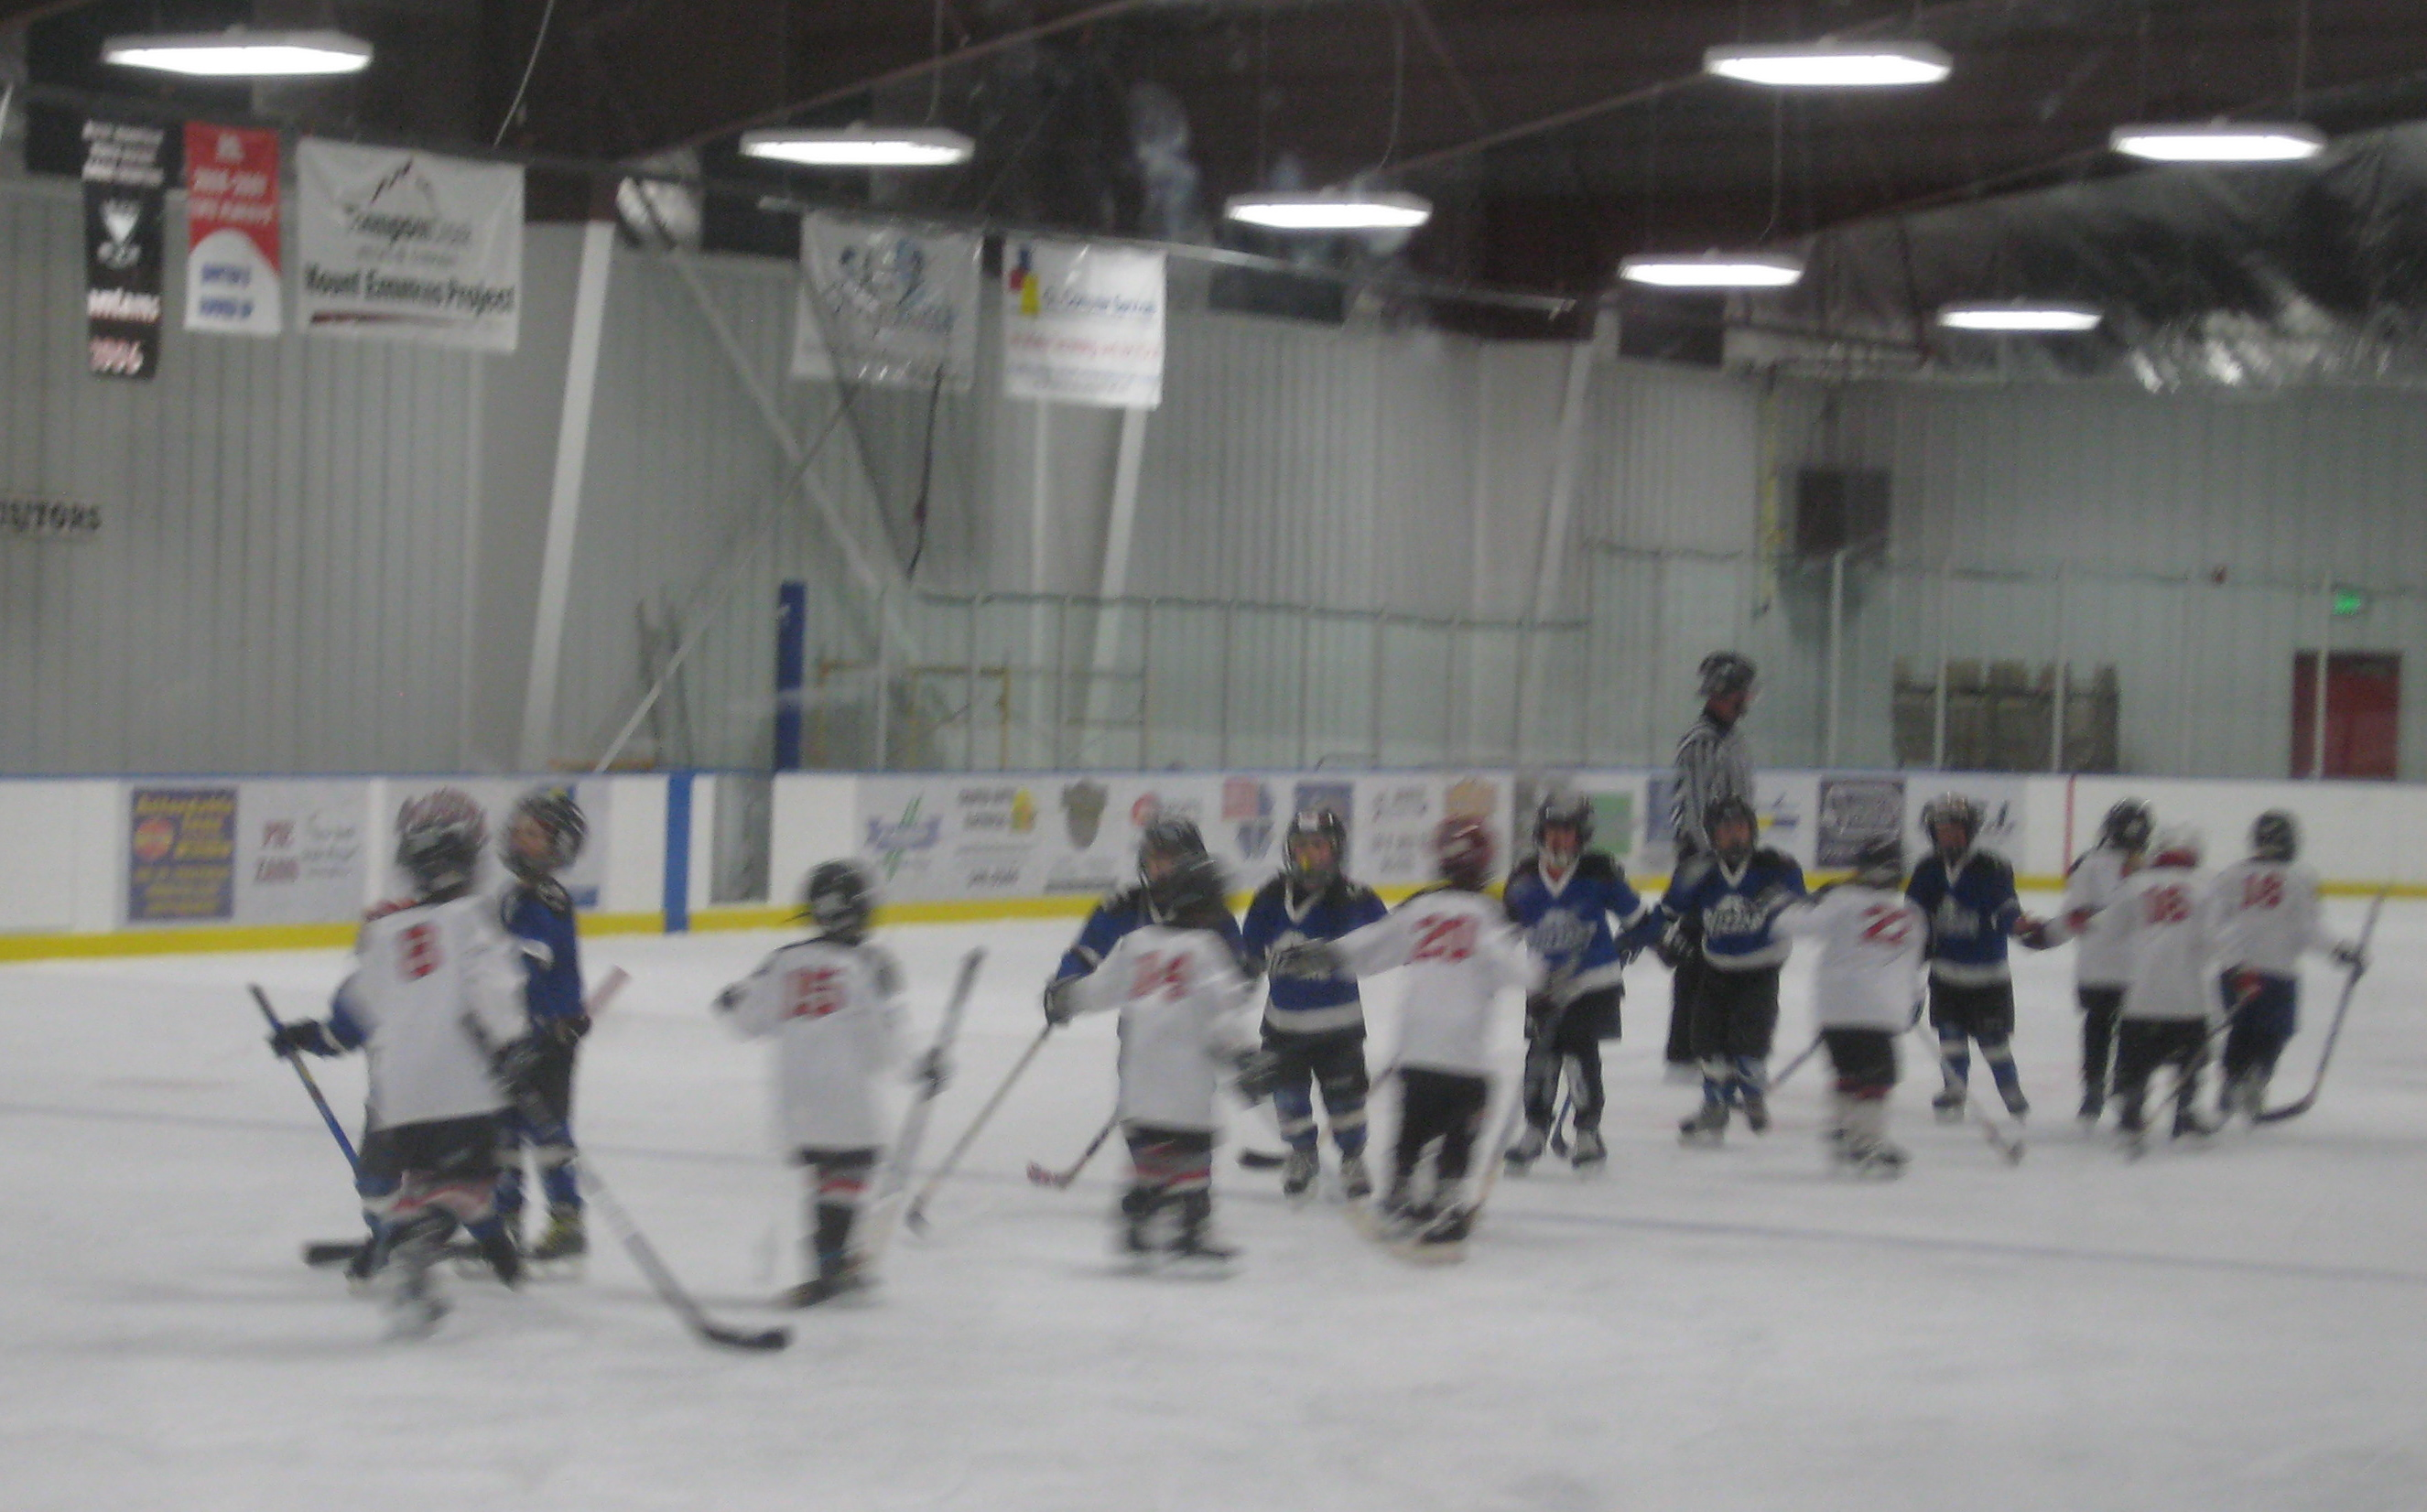 Gunnison children start hockey early